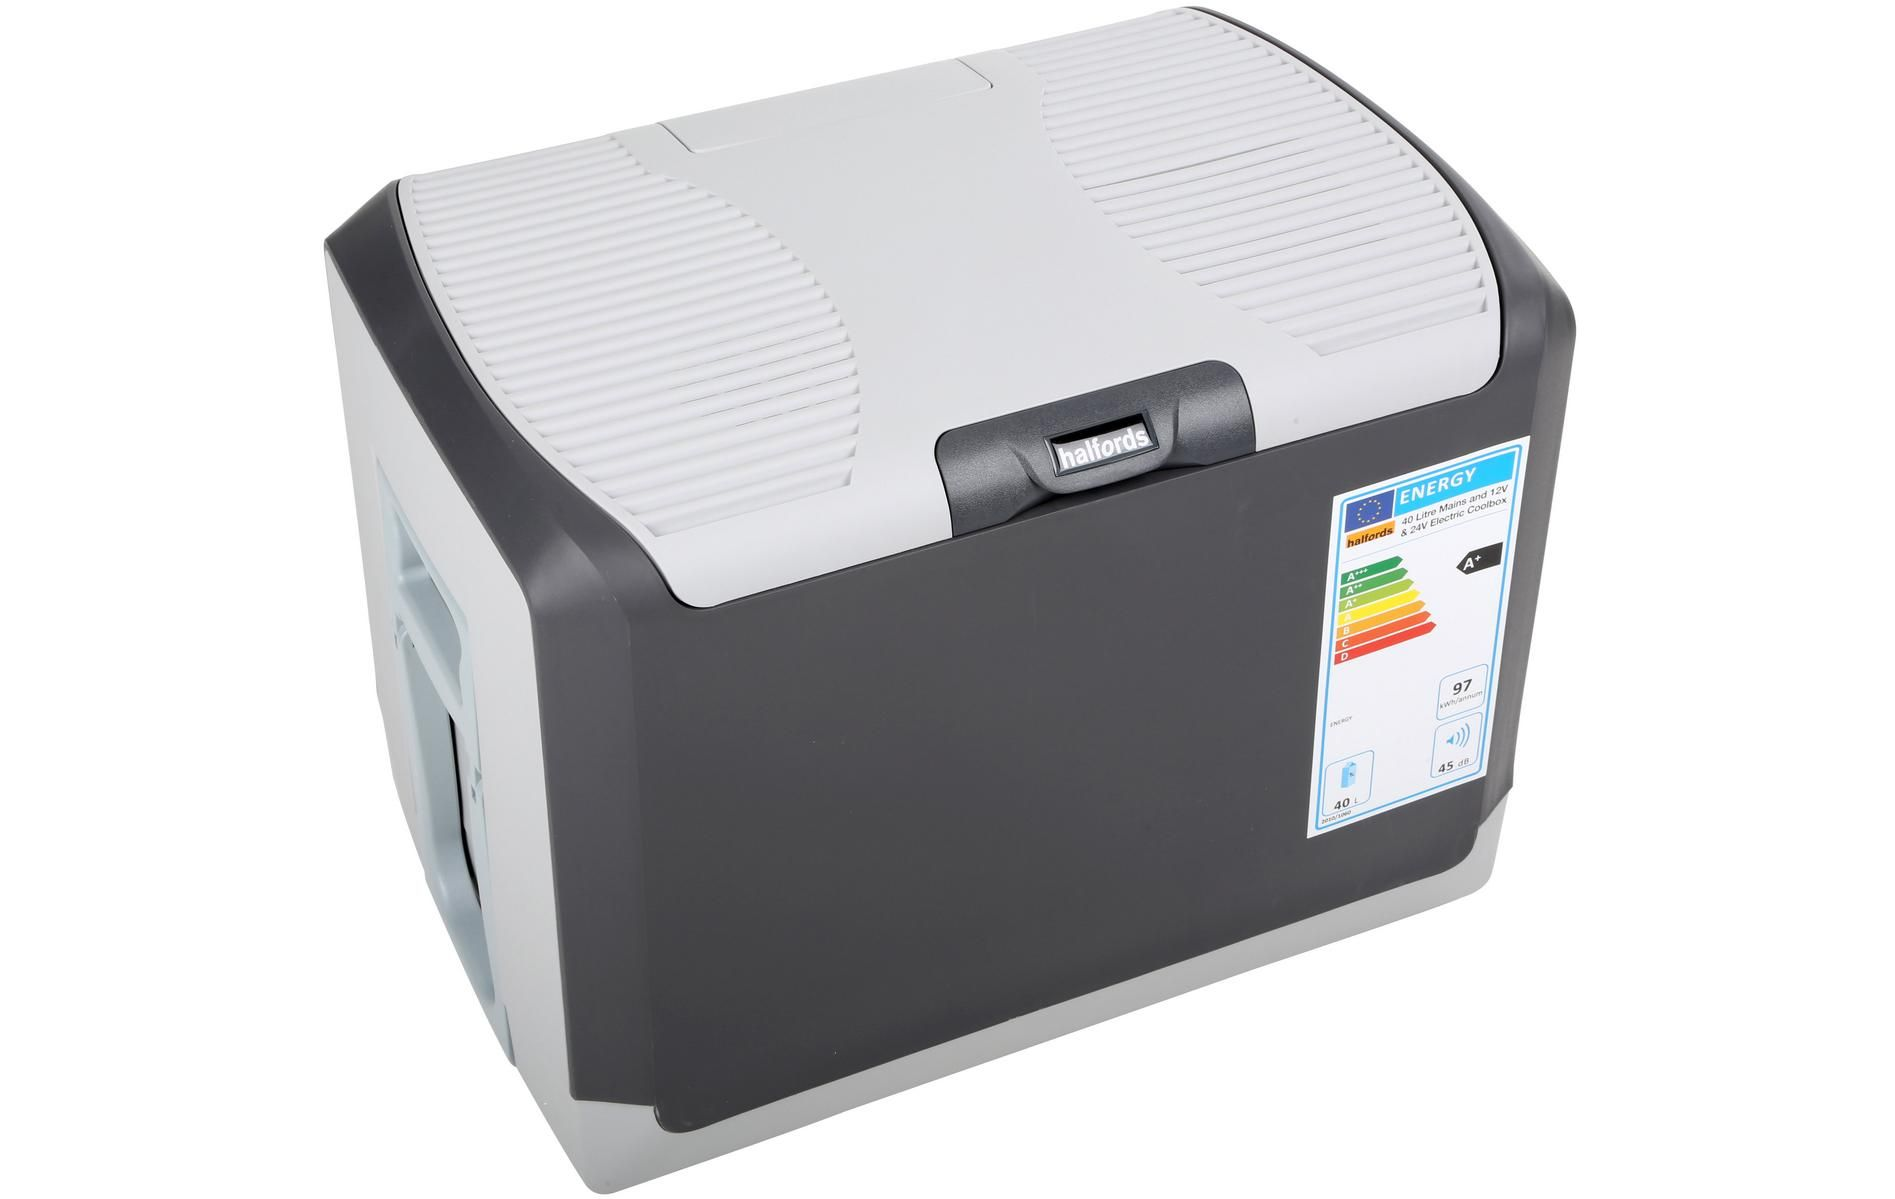 Halfords 40 Litre Mains And 12v 24v Electric Coolbox Halfords Uk Cable Storage Electricity Cleaning Wipes